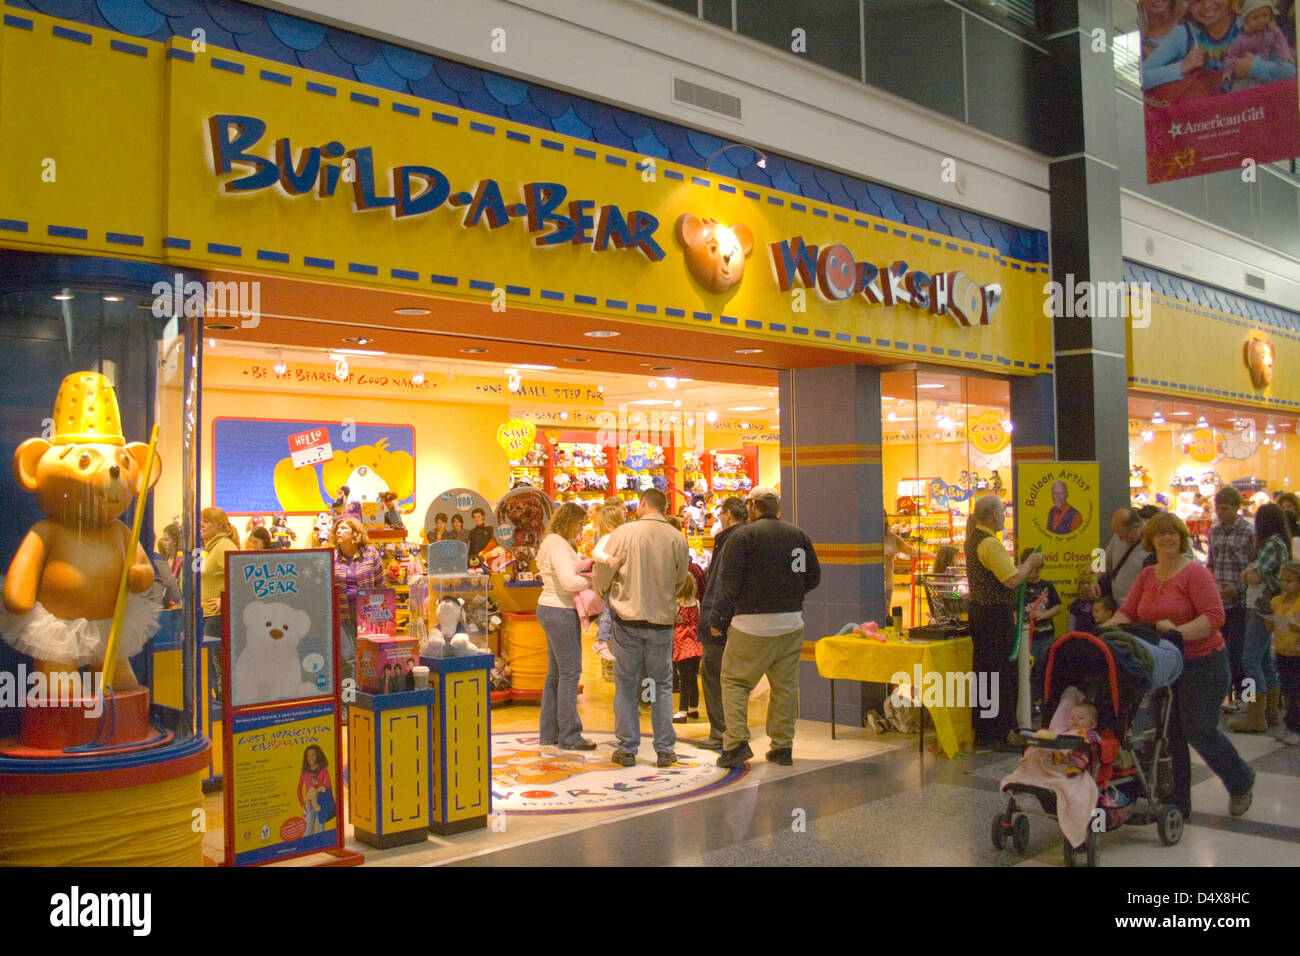 The Pokemon Company has announced a partnership with Build-A-Bear Workshop to add its most iconic creature, Pikachu, to the company's roster of stuffed animals. Starting in , you'll be able to.